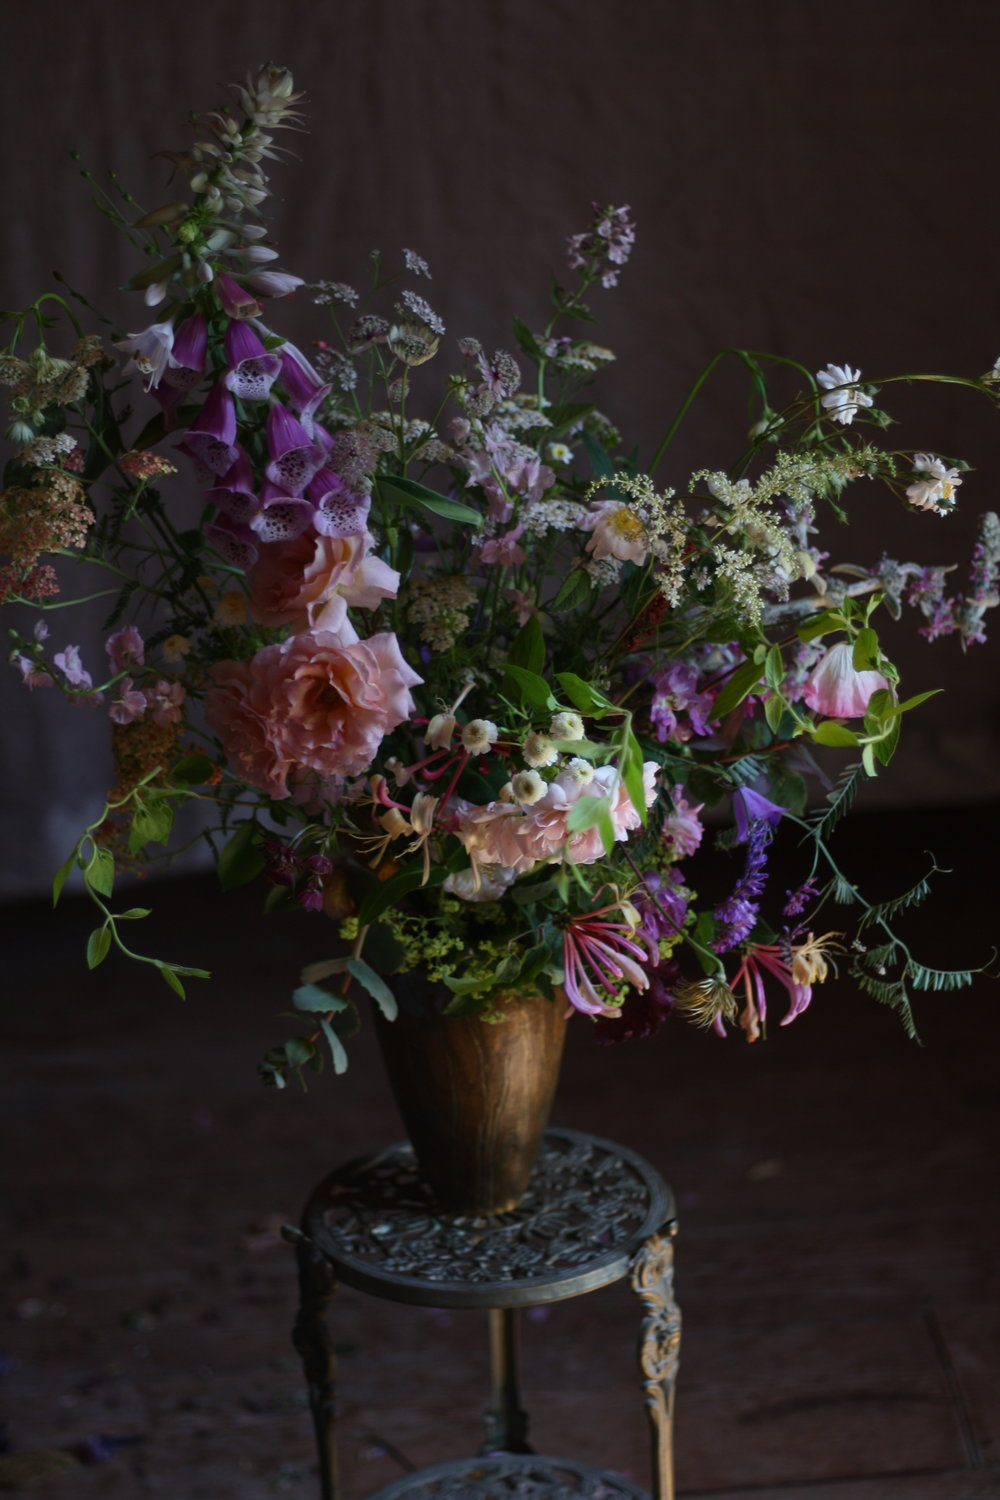 A wild hedgerow floral arrangement, from a Nova Scotian Flower Farm.